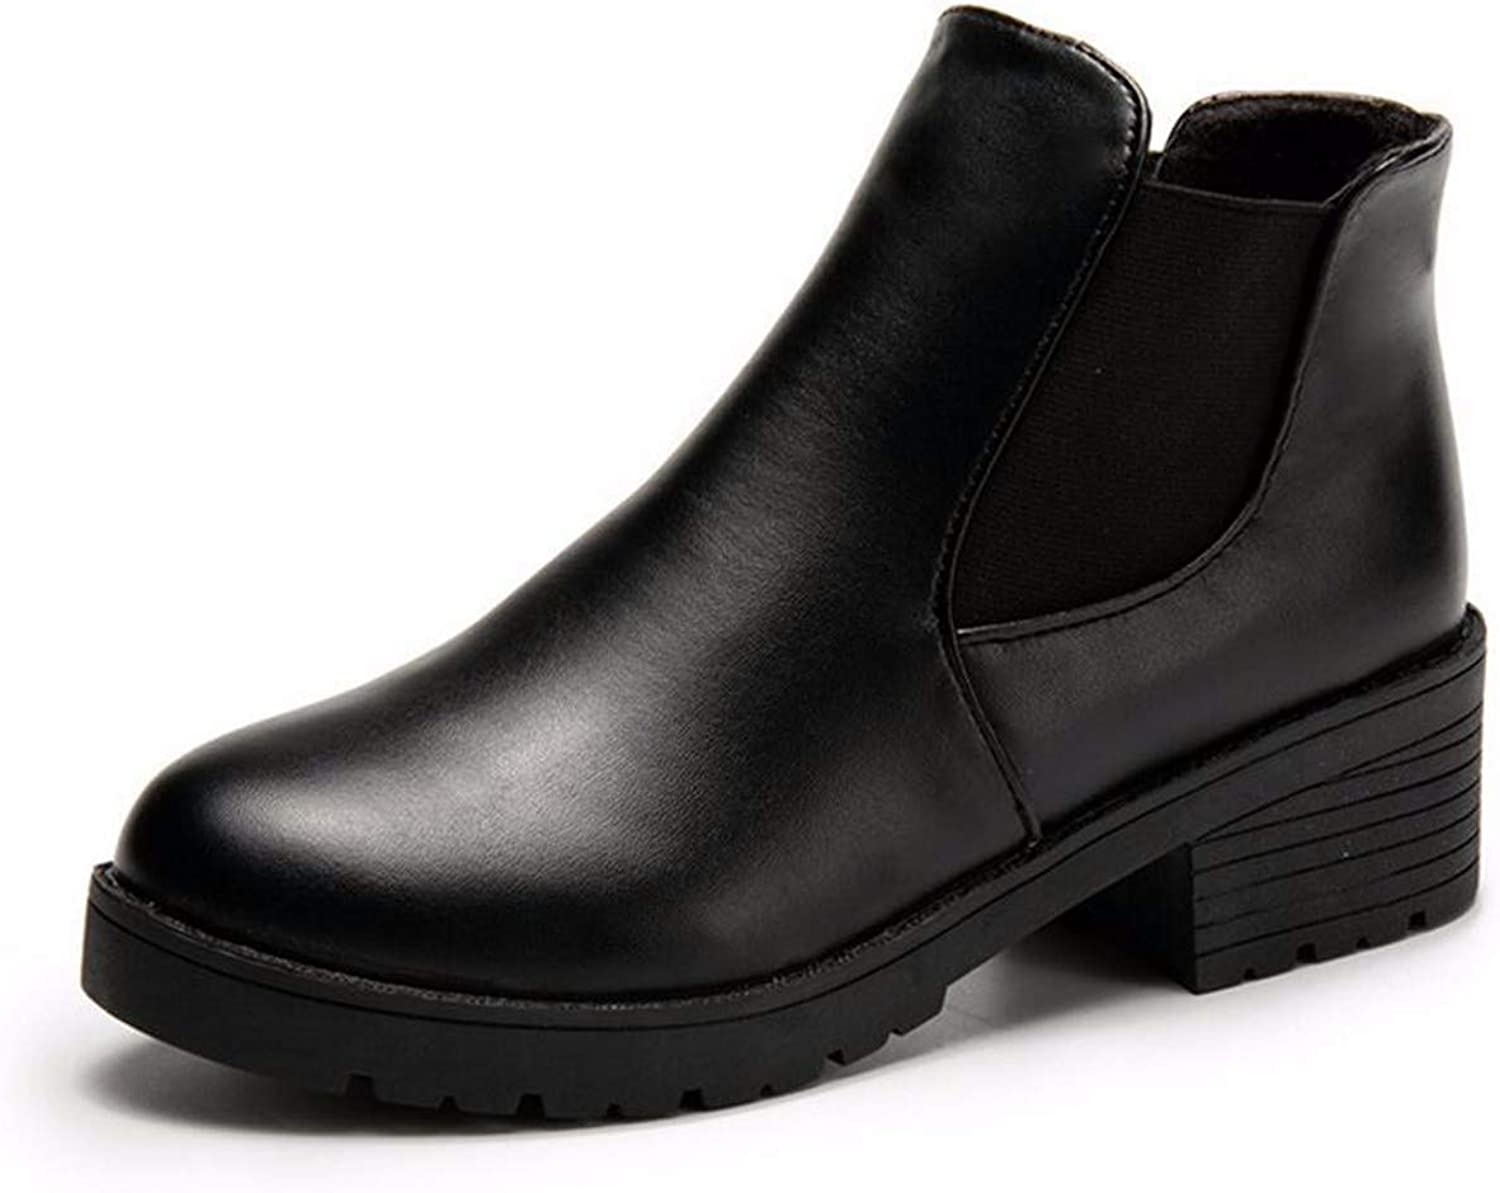 Martin Boots Women, Autumn and Winter, Rough and Korean Boots and Rough and Round Boots.